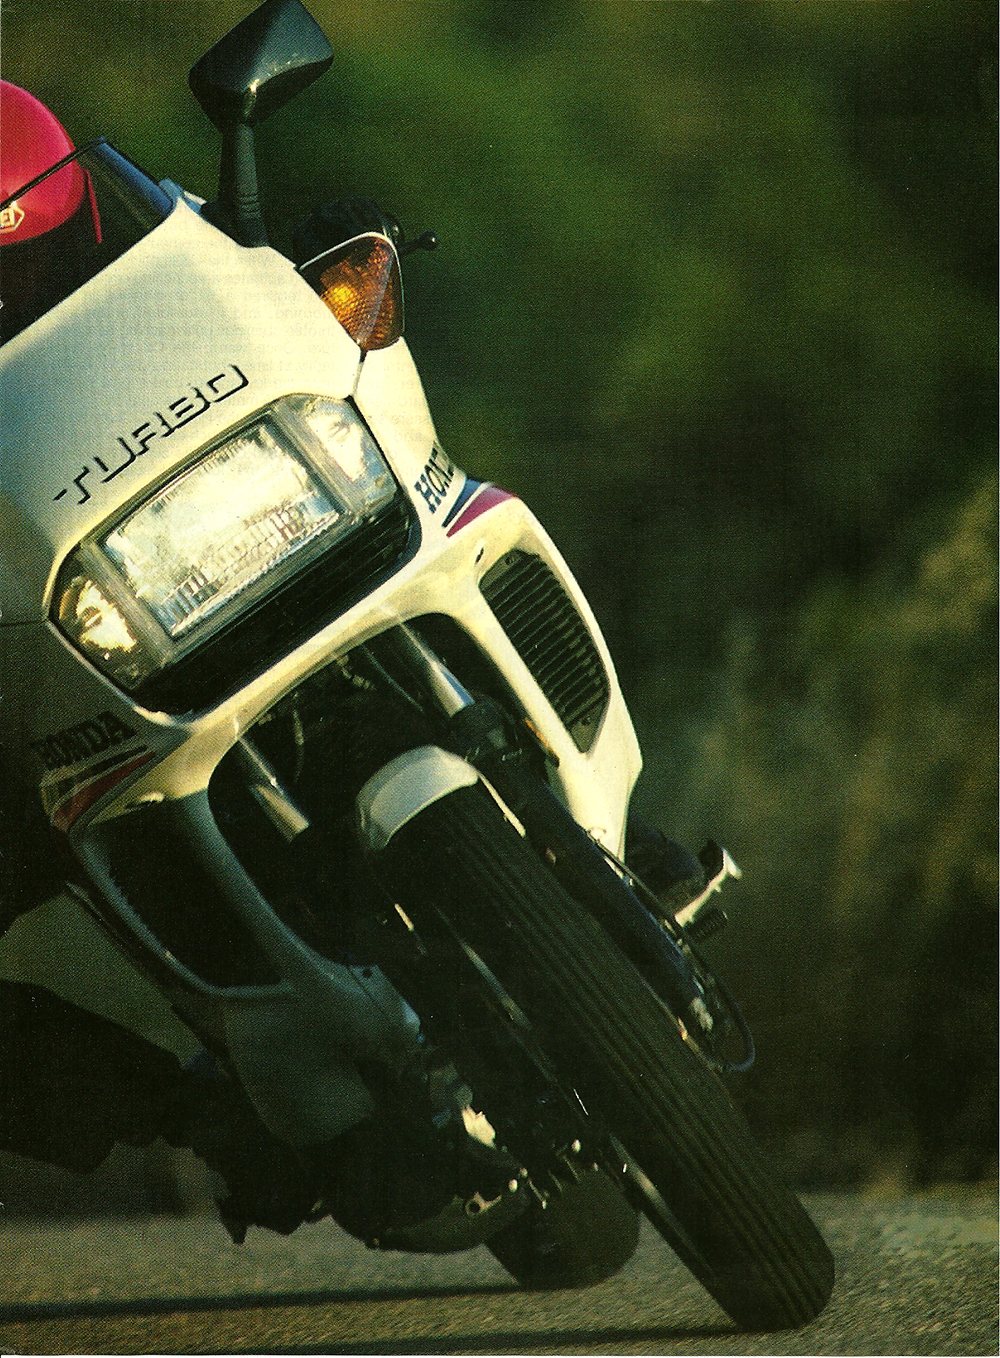 1983 Honda CX650 turbo road test 2.jpg